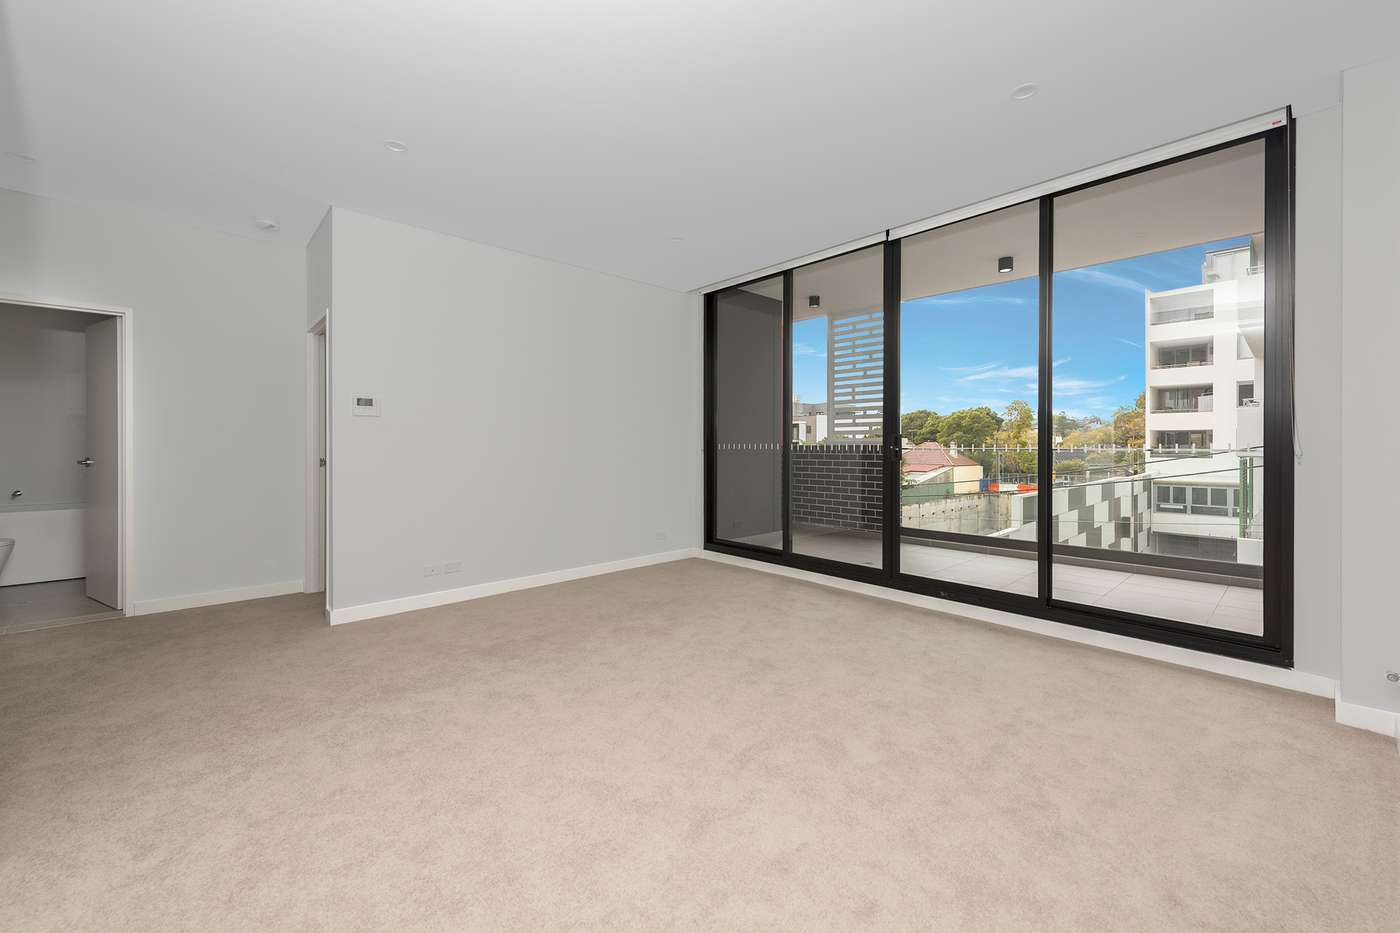 Main view of Homely apartment listing, 202/2-14 McGill Street, Lewisham, NSW 2049